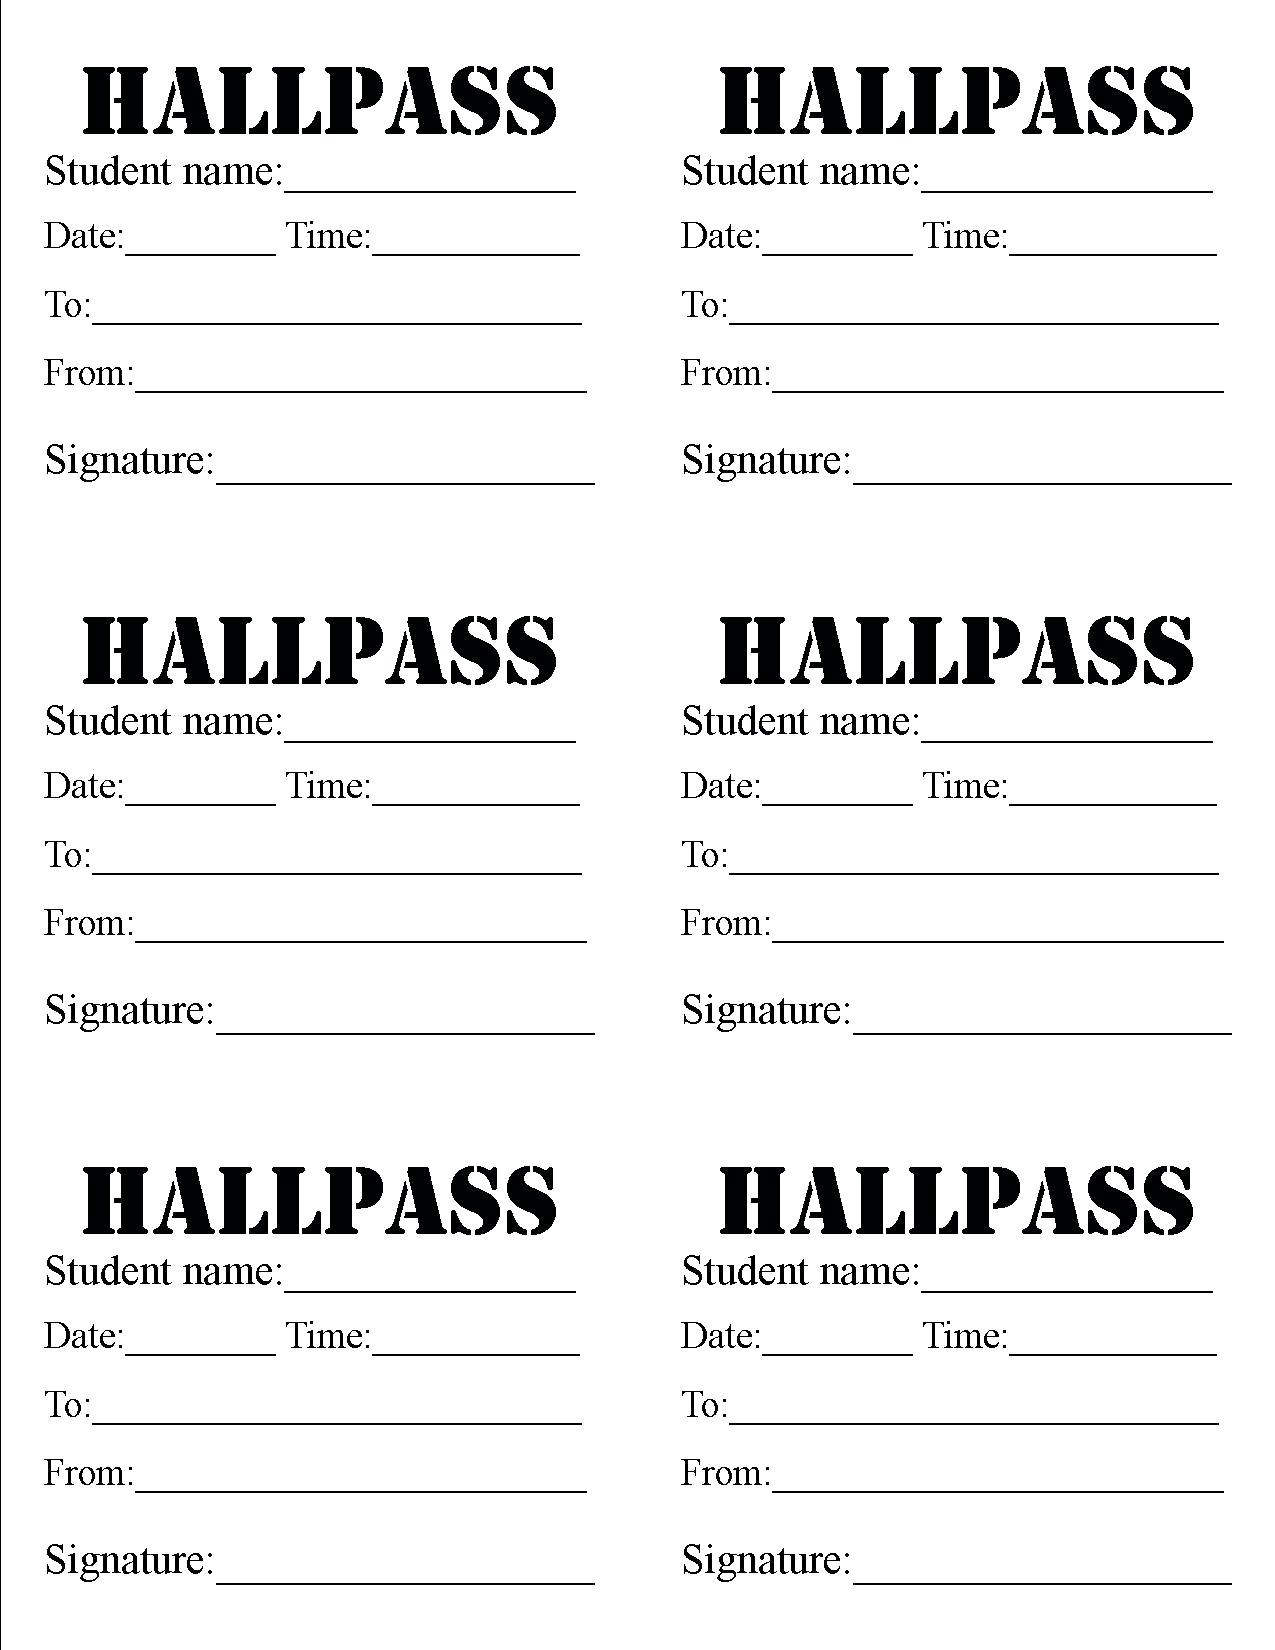 Hall Pass Template 10 Outrageous Ideas For Your Hall Pass - Free Printable Hall Pass Template